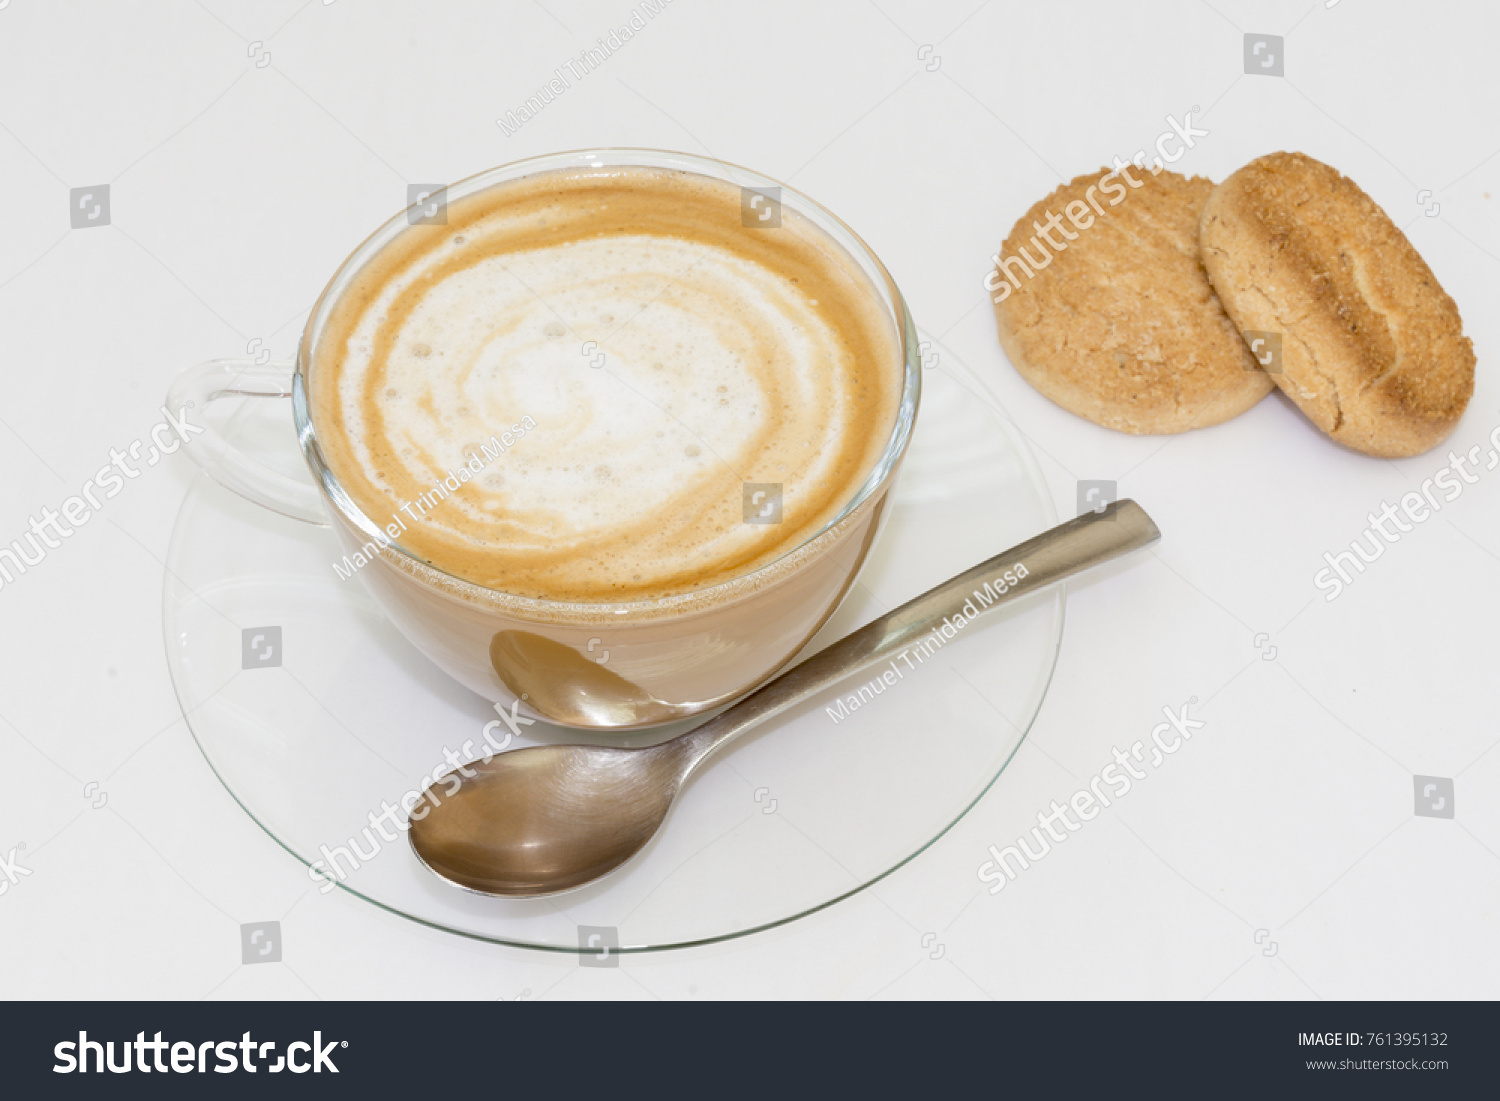 stock-photo-coffee-with-milk-in-a-transp